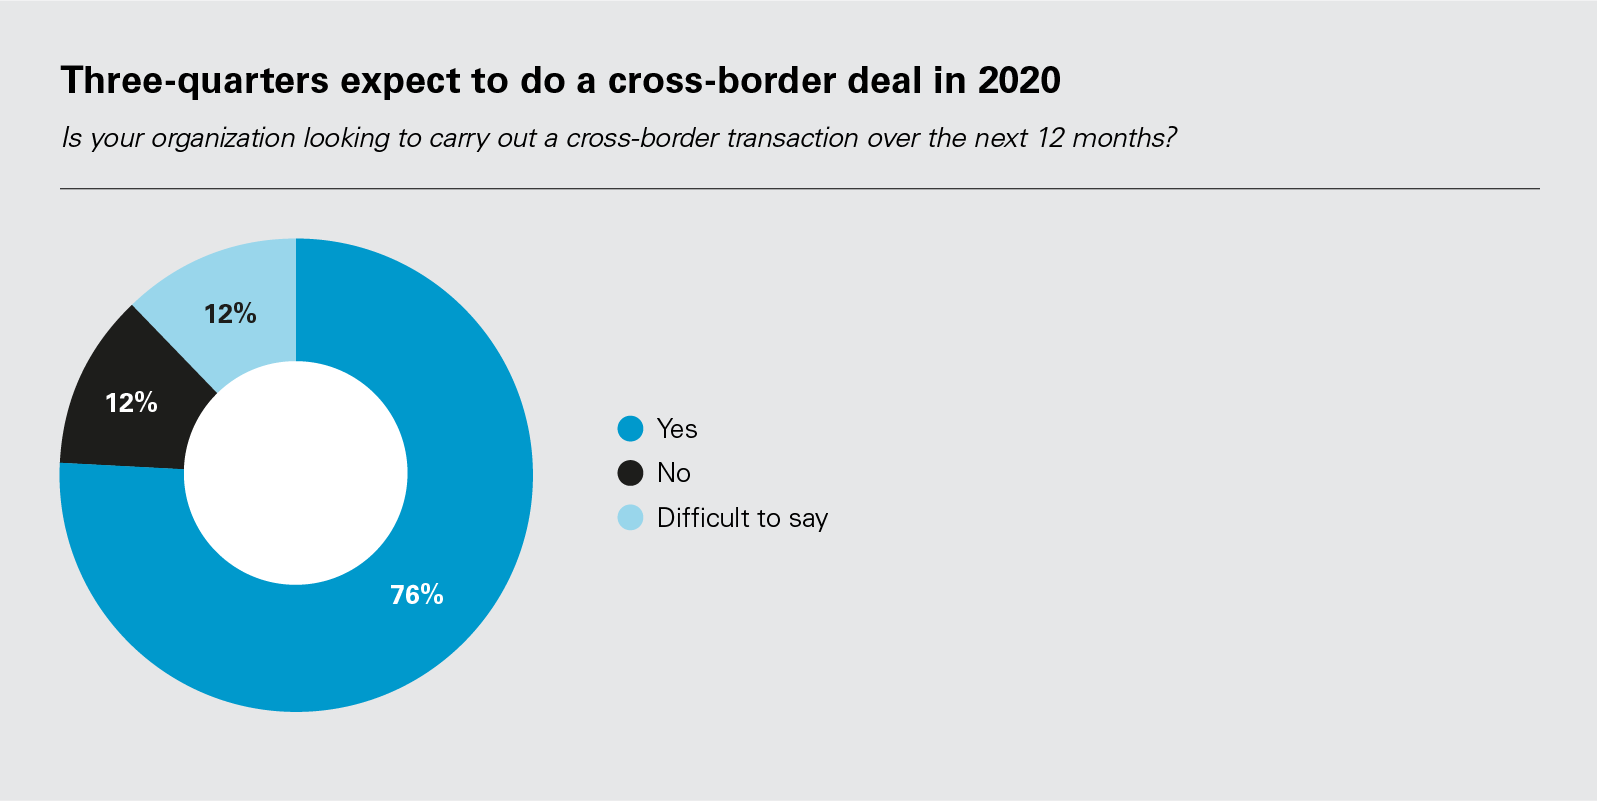 Three-quarters expect to do a cross-border deal in 2020